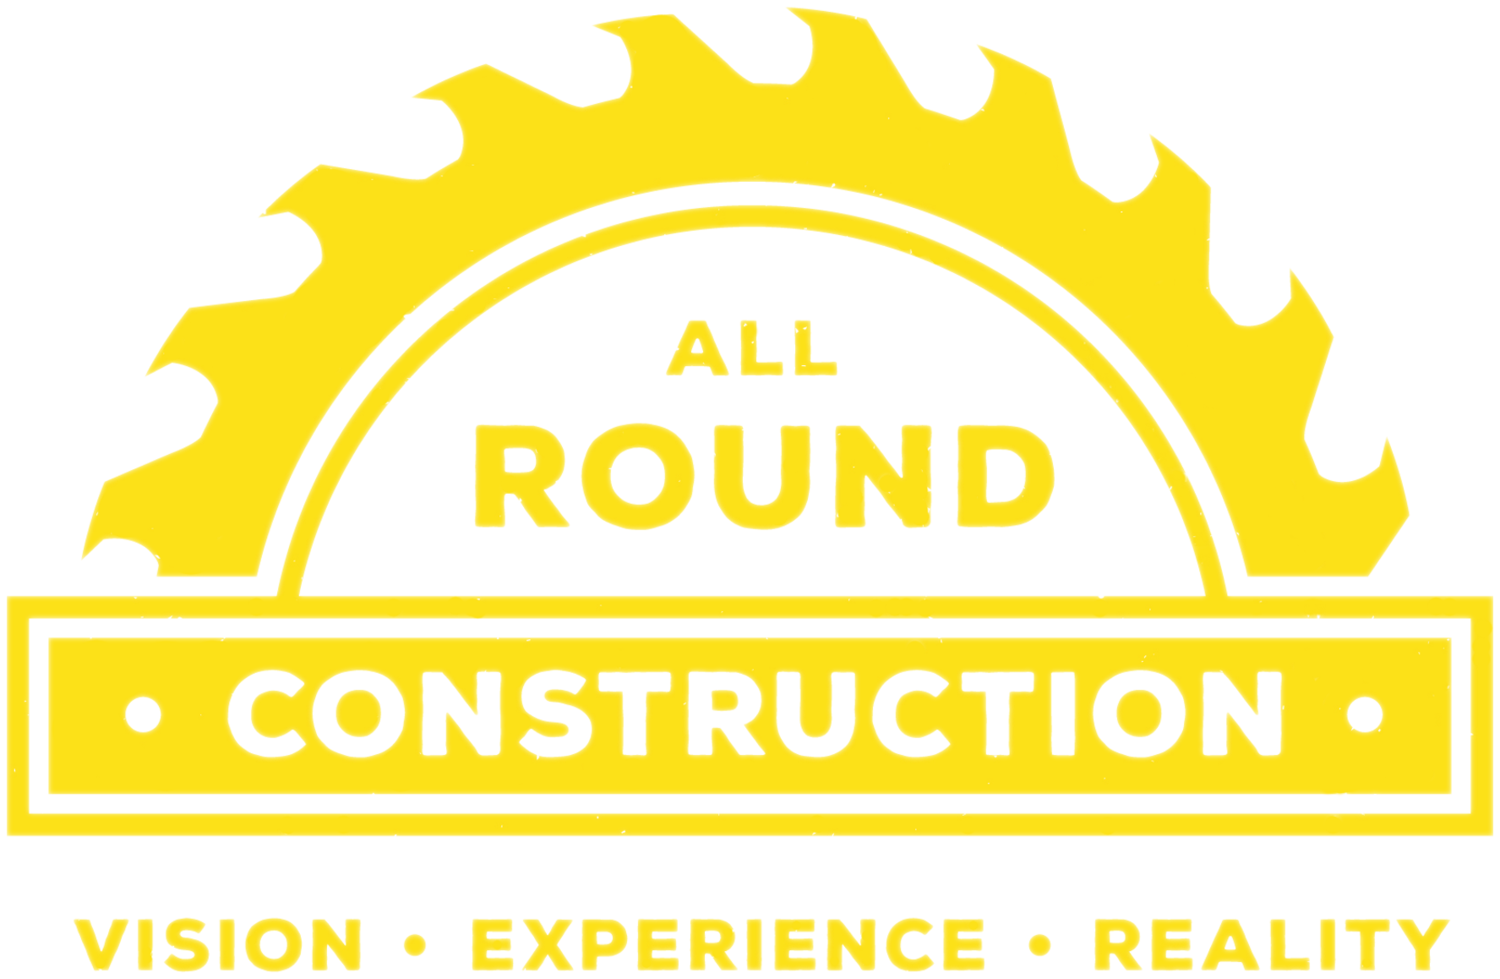 All Round Construction